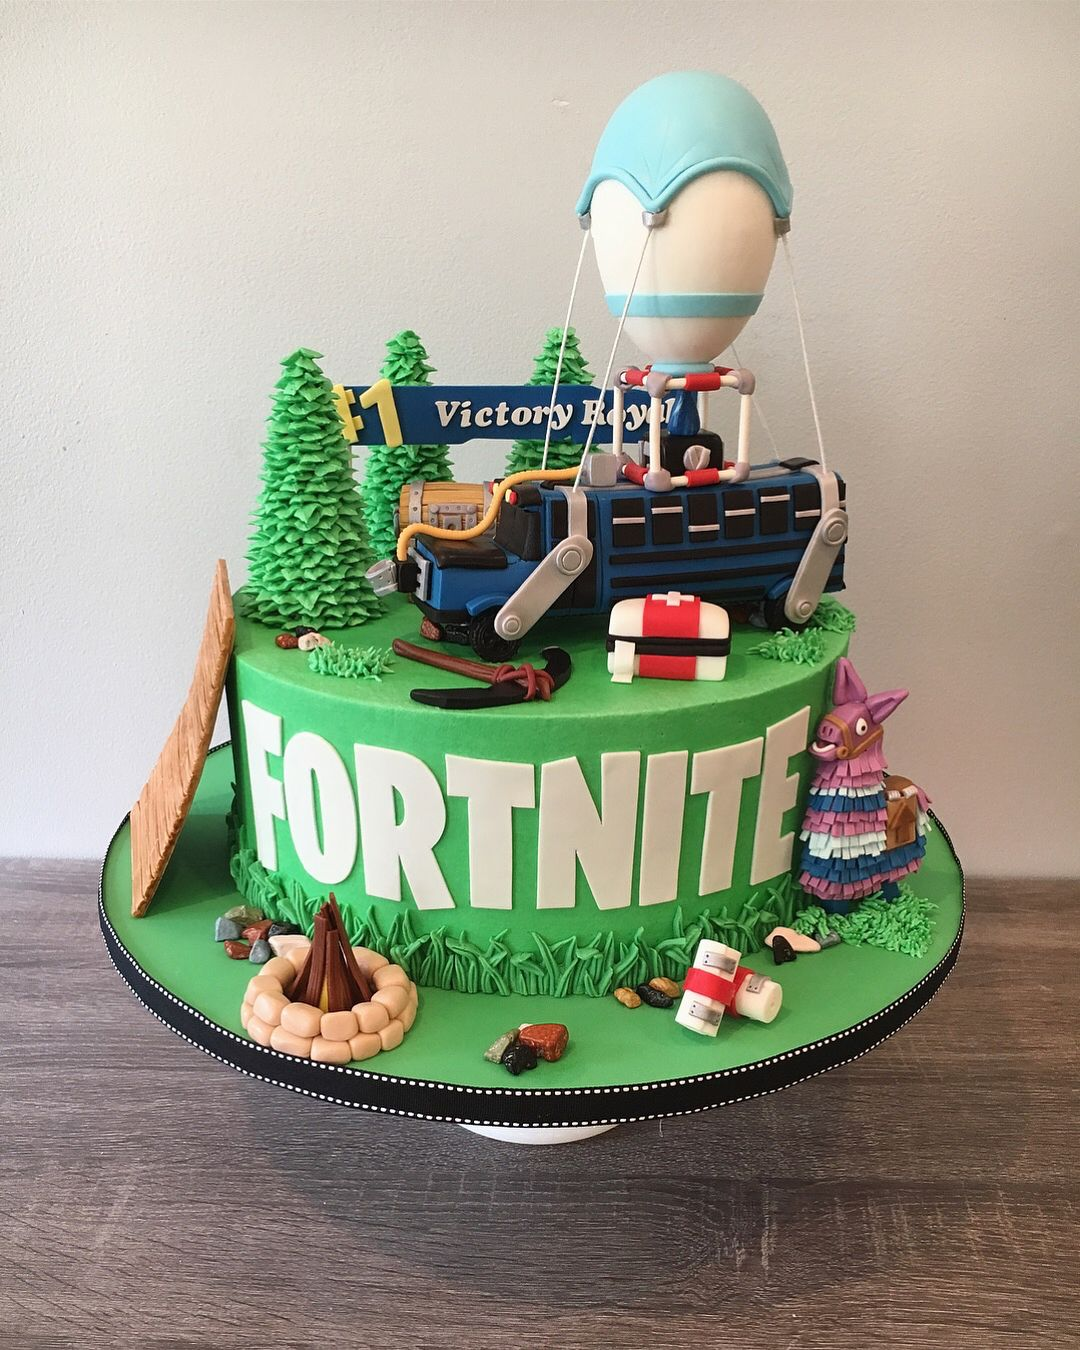 Image result for battle bus cake image